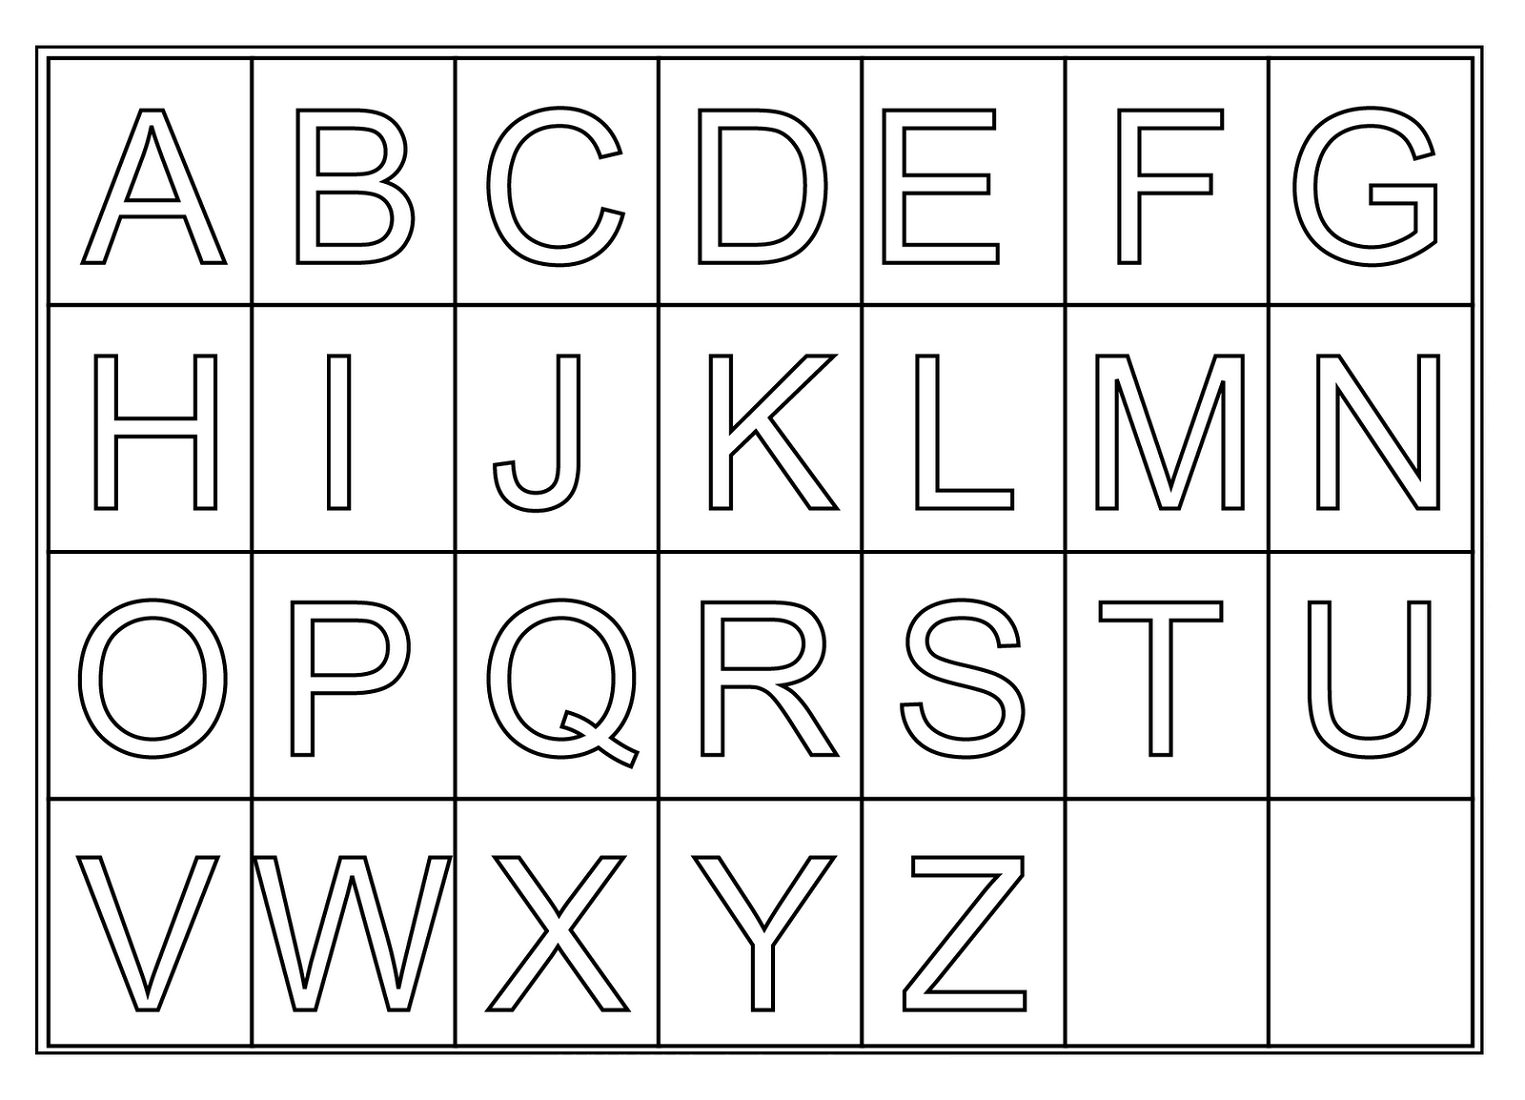 Printables Preschool Letter Worksheets Printable free printable letters activity shelter a z